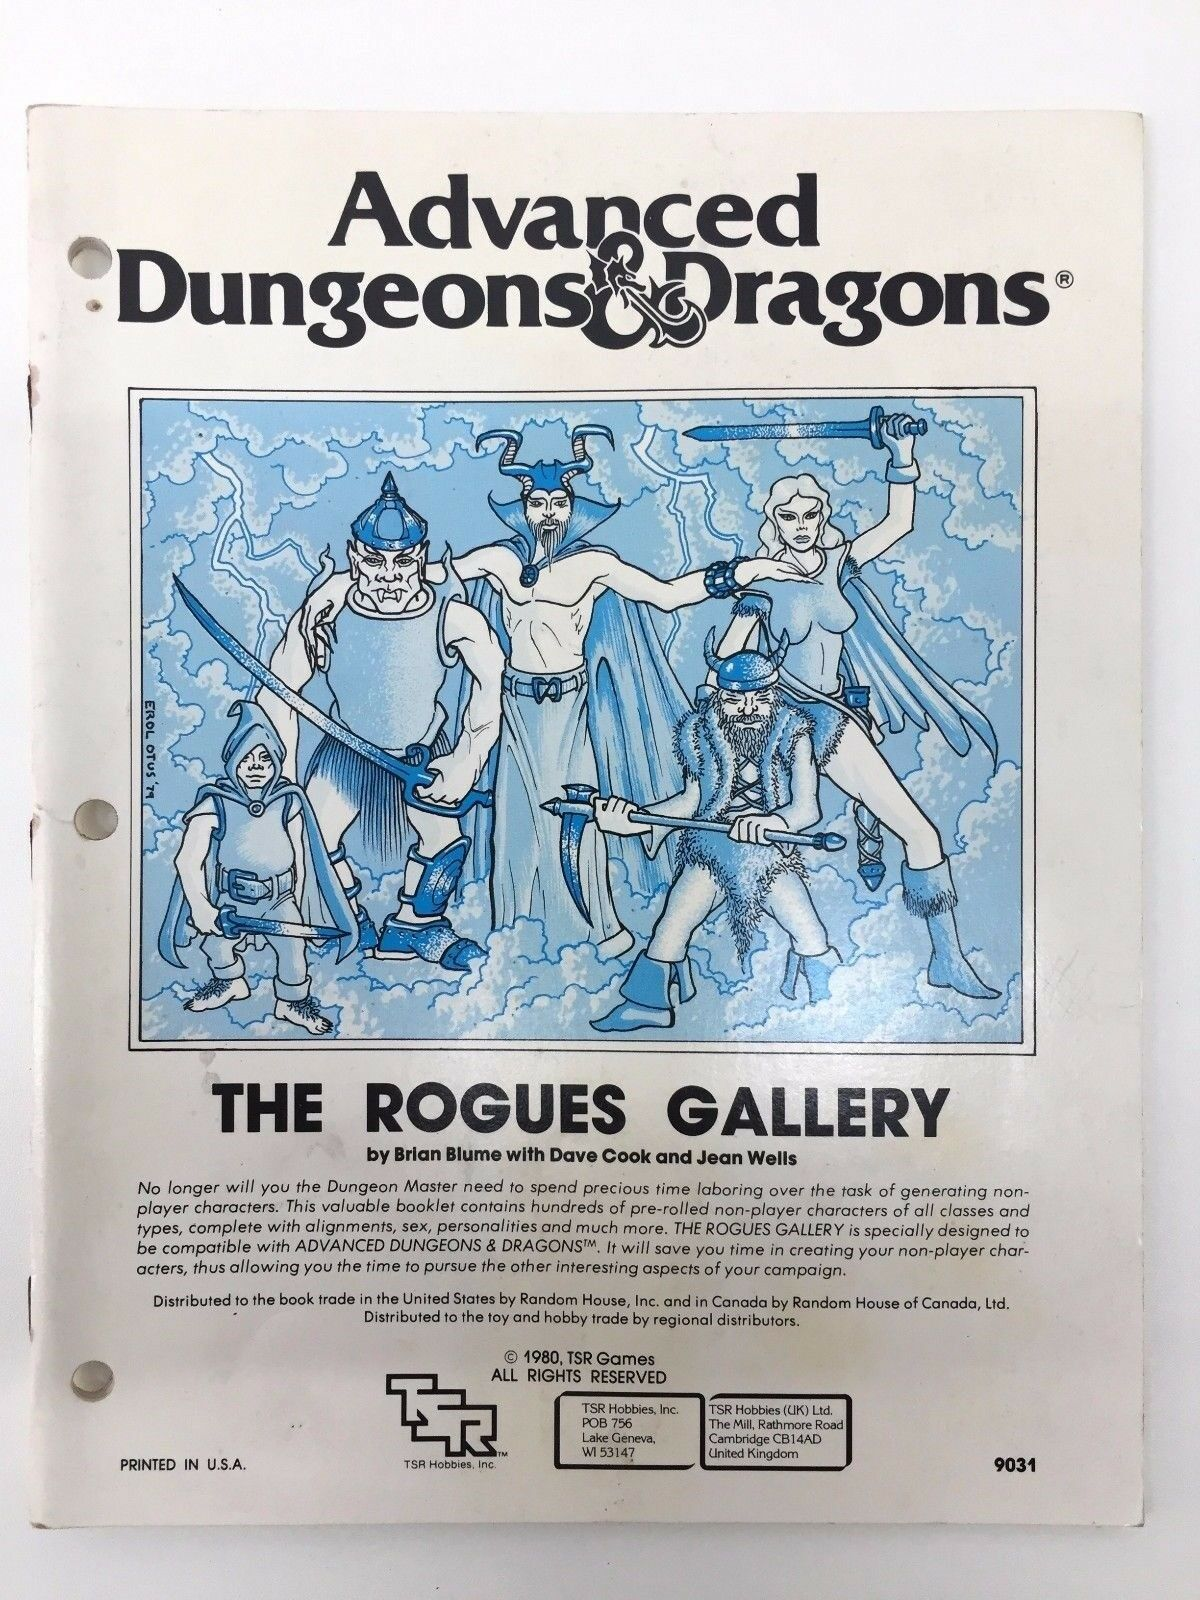 TSR ADVANCED DUNGEONS & DRAGONS THE ROGUES GALLERY RANDOM CHARACTER 9031 1980